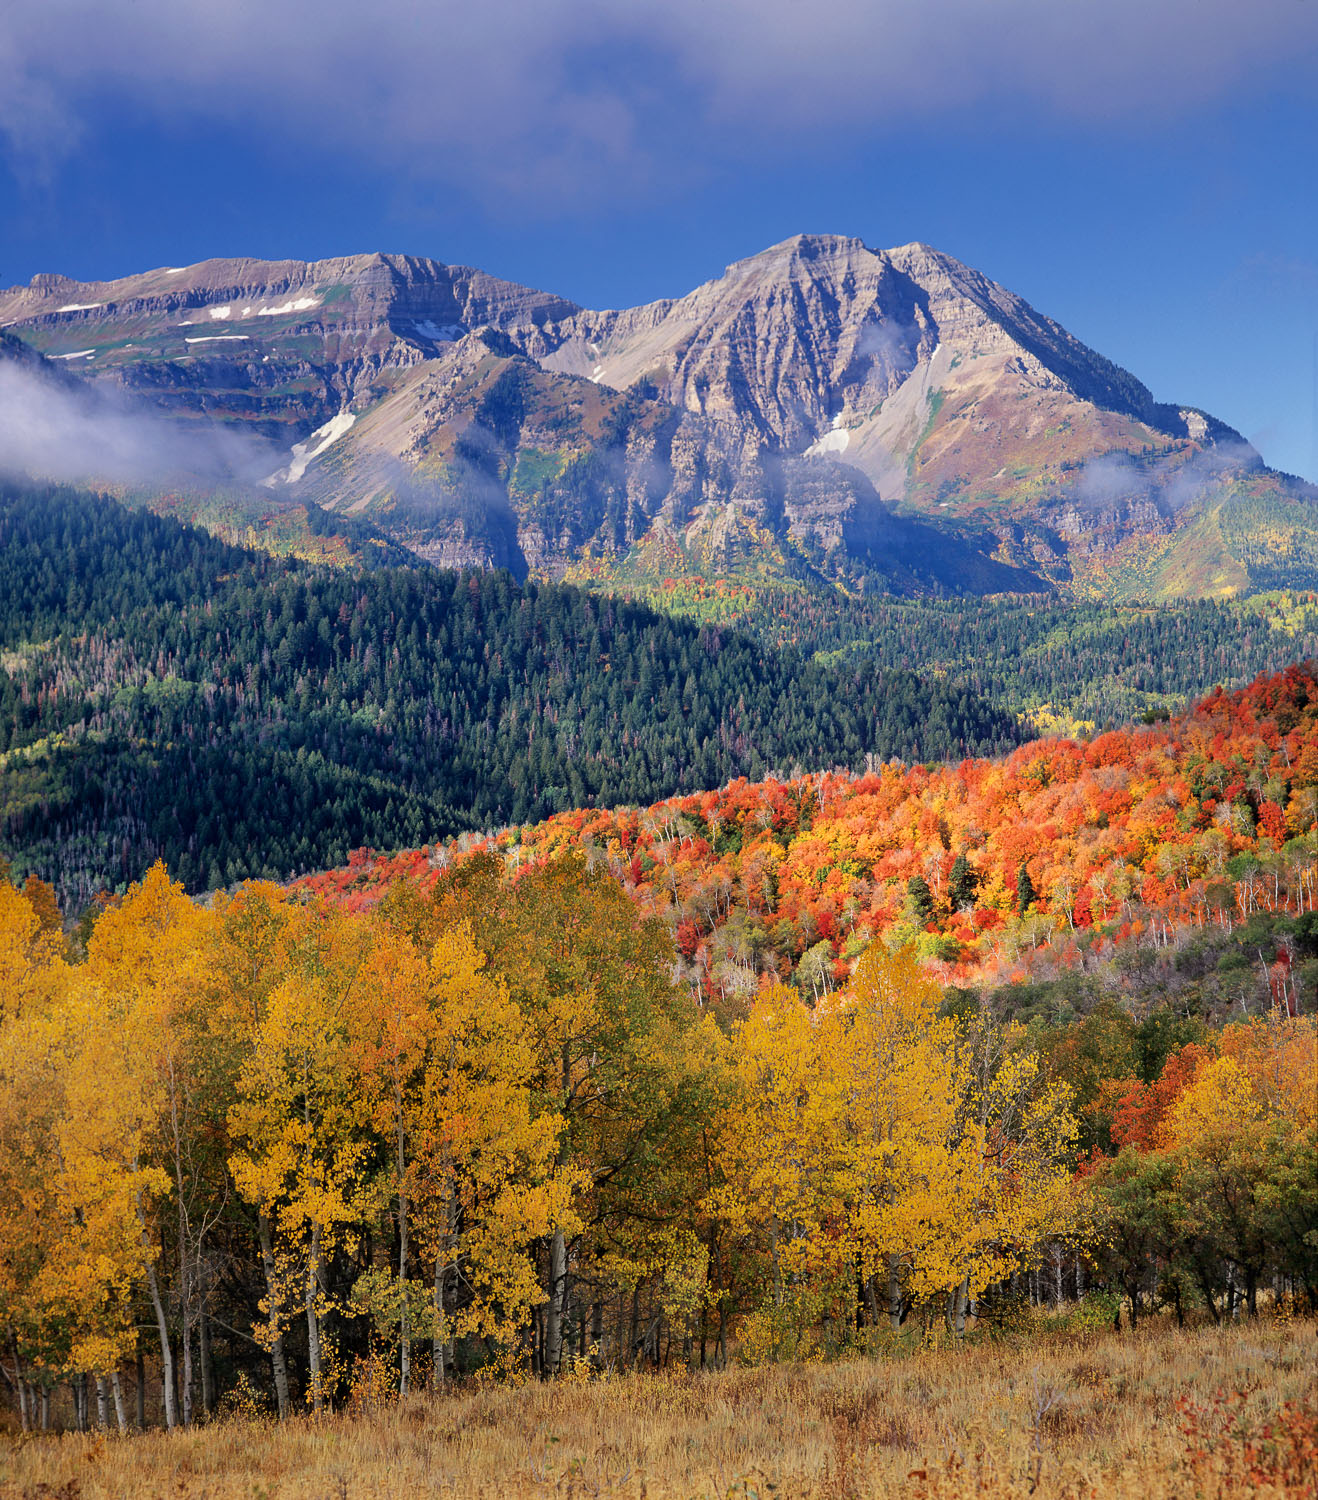 Fall Aspen , Red Maple Trees  Mount Timpanogos, and Blue Sky,Was